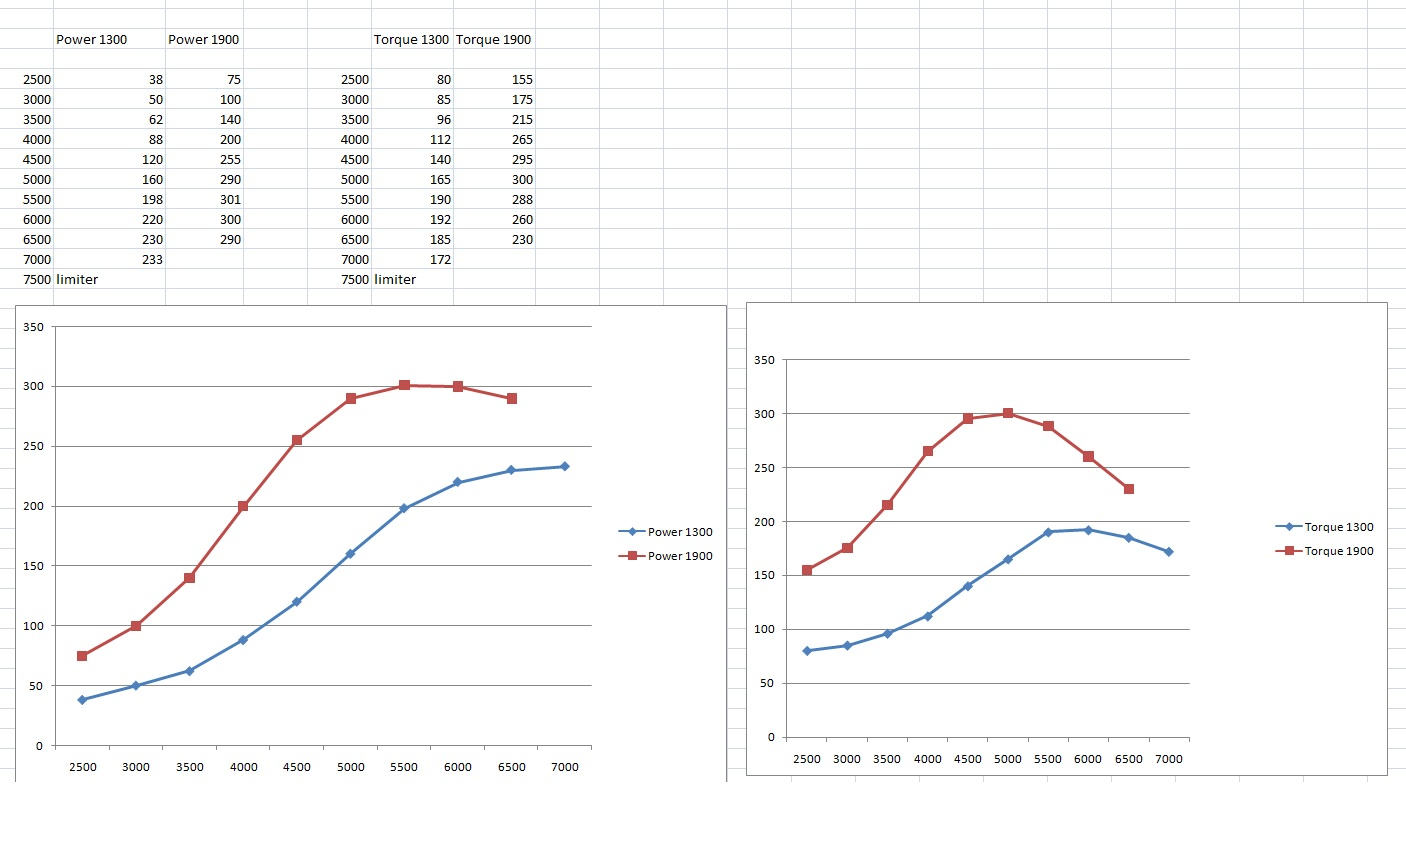 excel 1900 vs 1300 comparison.jpg